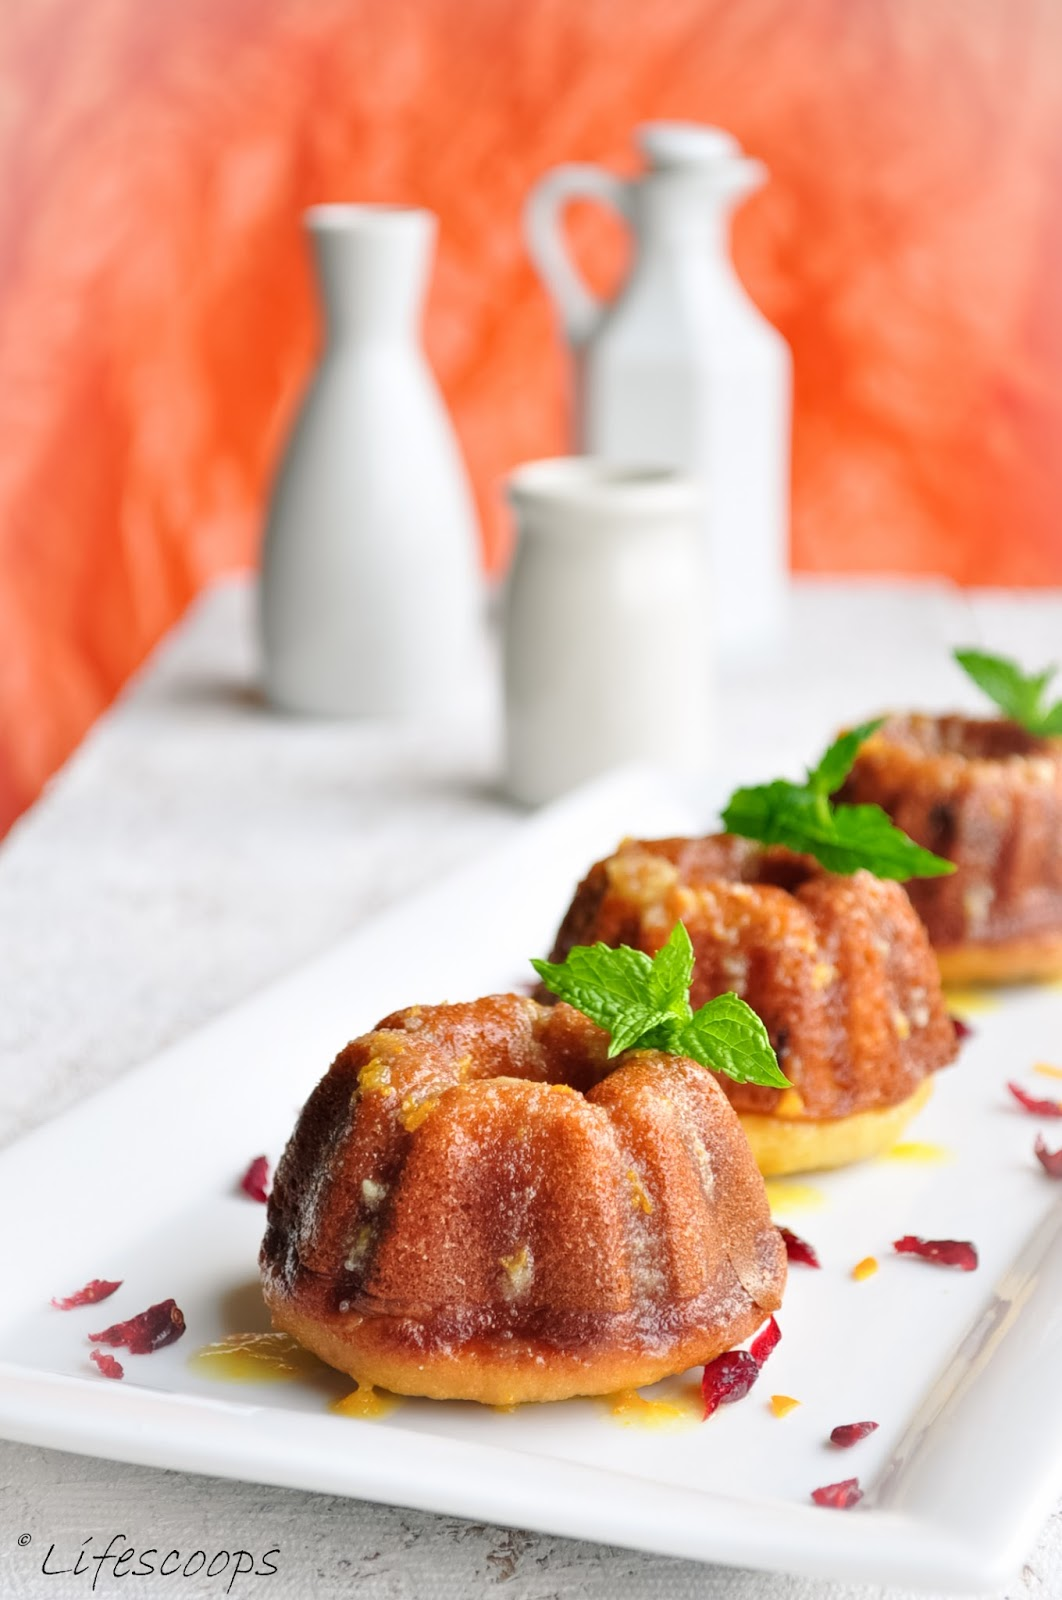 Cranberry Bundt Cake With Orange Glaze